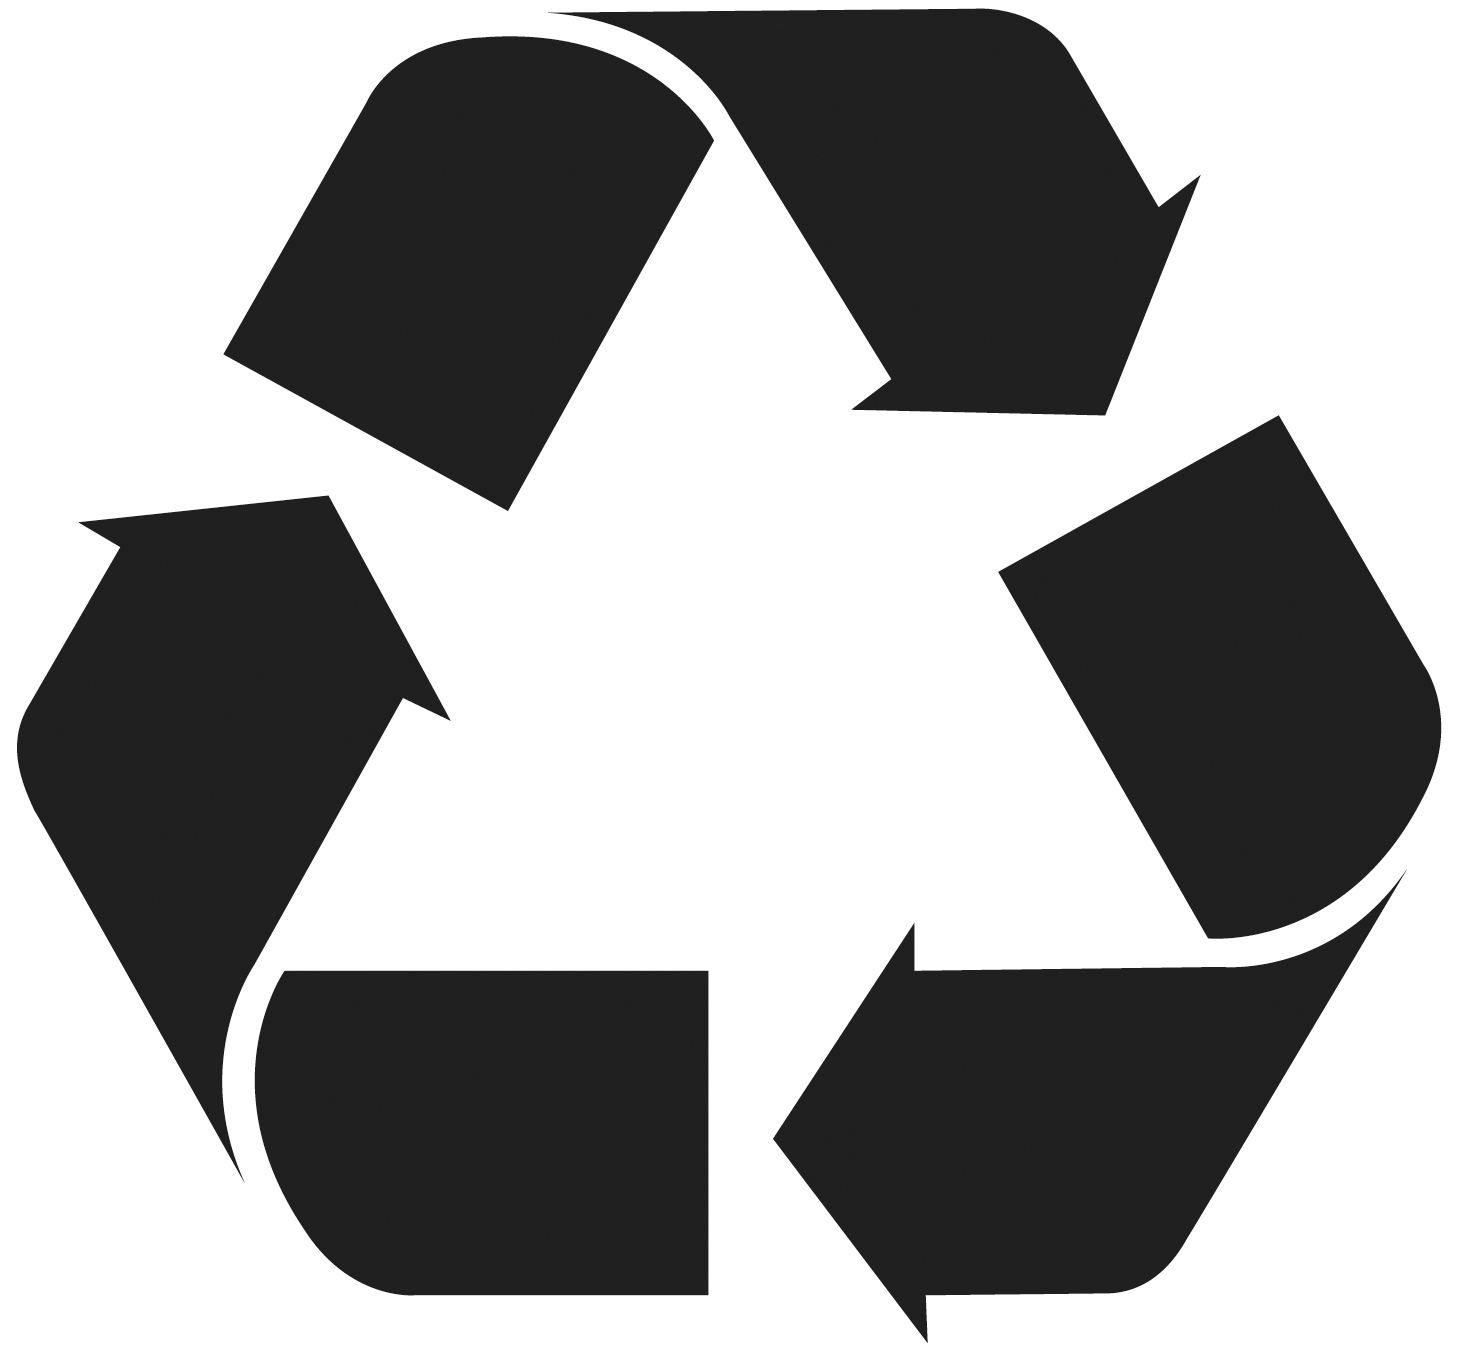 Recycle Symbol Clip Art. Recycle More Mi-Recycle Symbol Clip Art. Recycle More Minnesota | Tools .-14